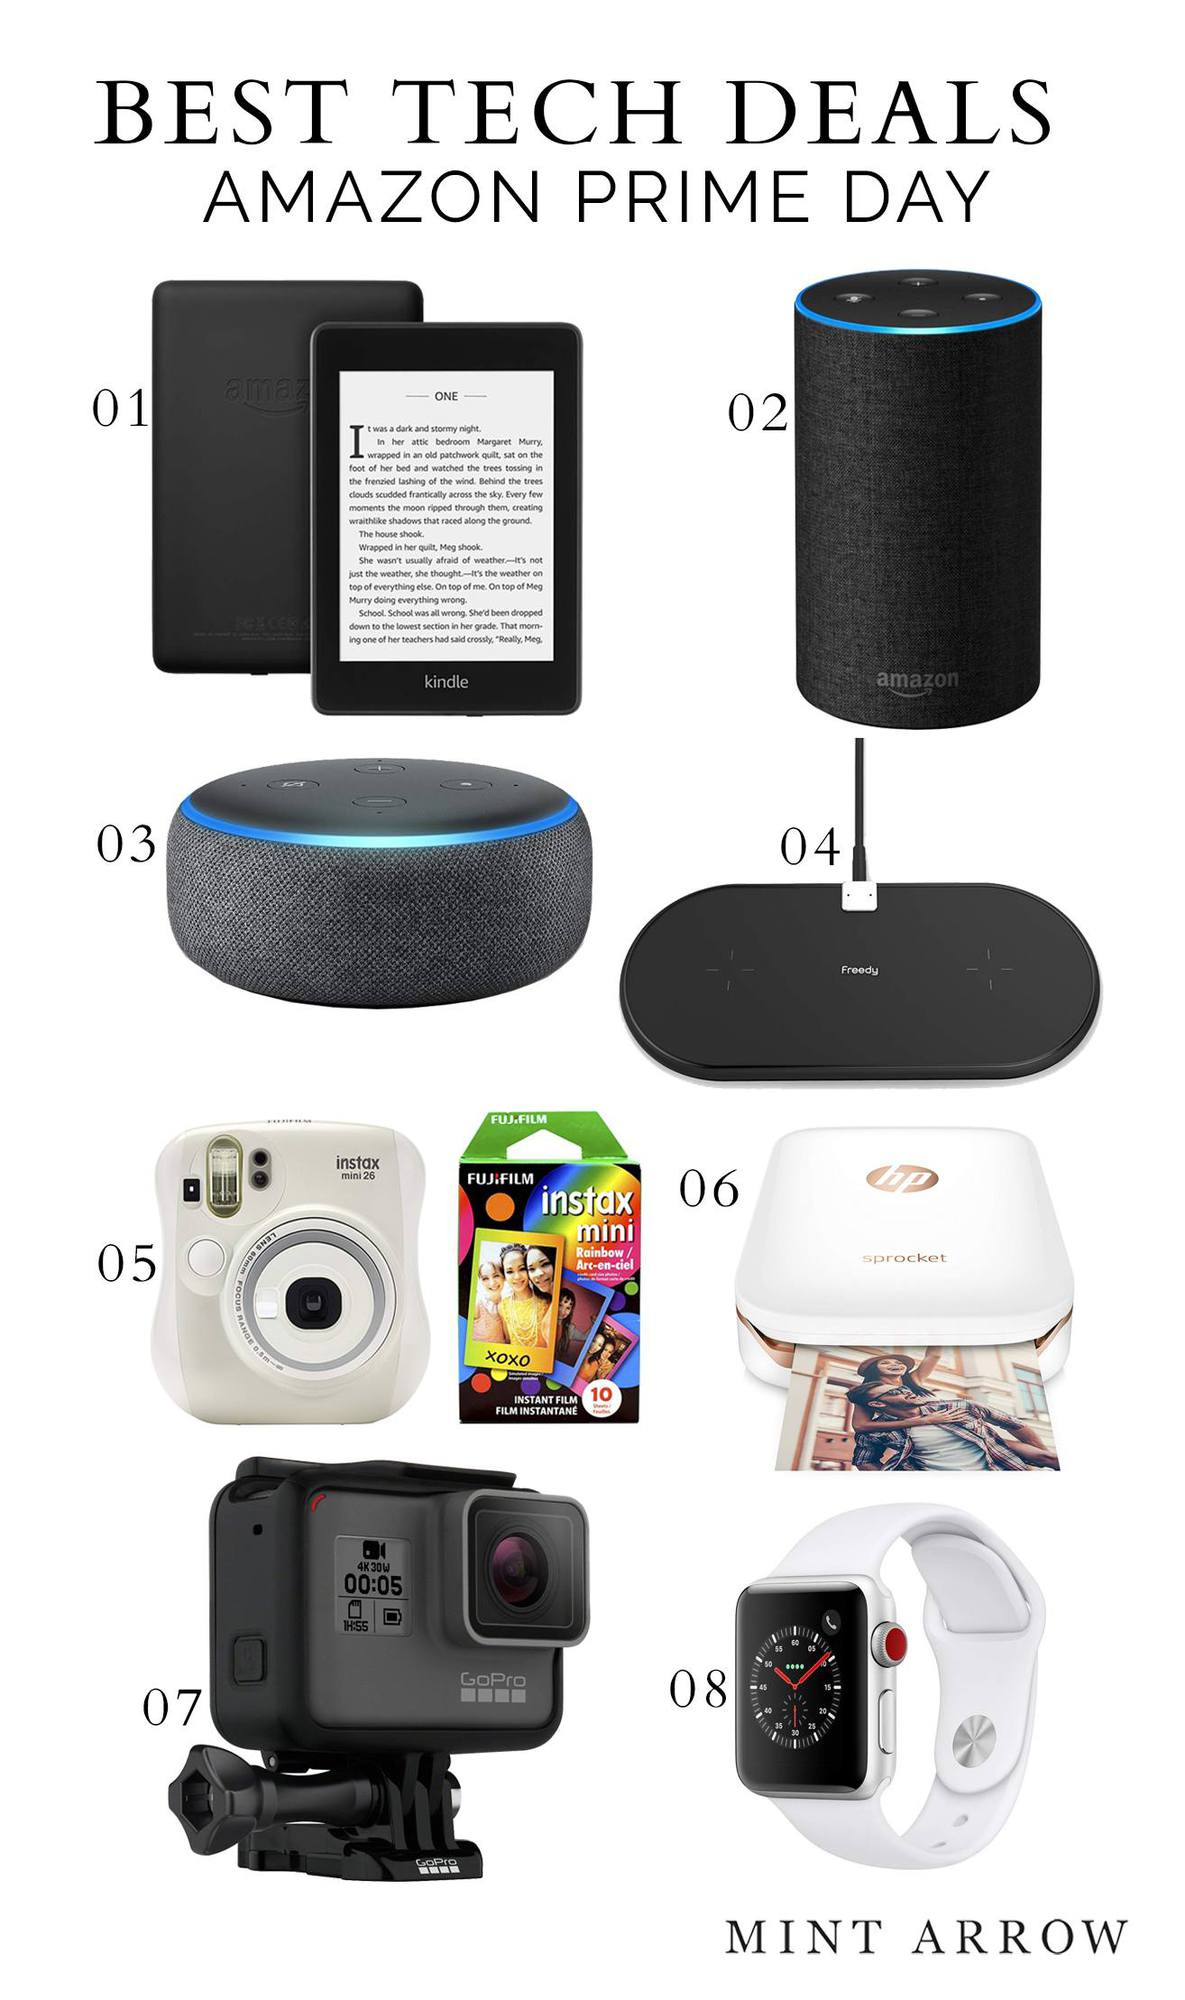 best deals tech amazon prime day 2019